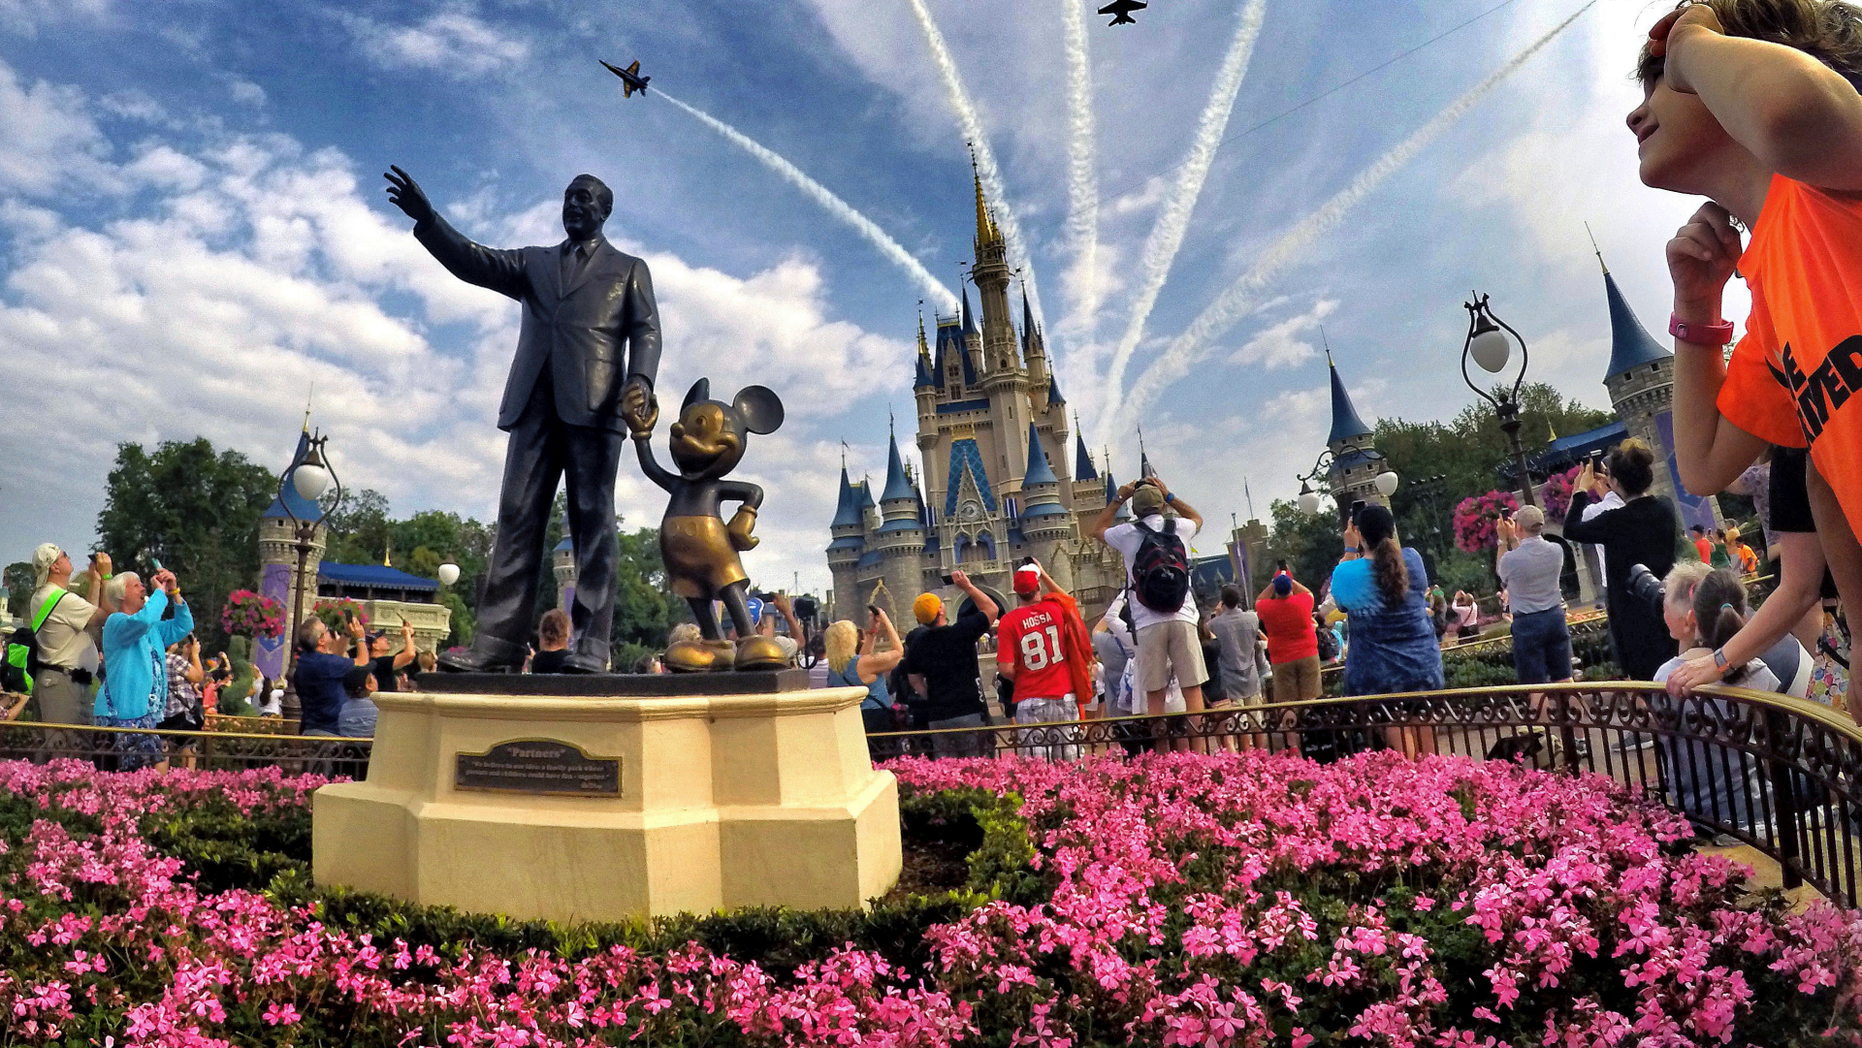 FILE -- The Blue Angels, the U.S. Navy's legendary flight performance squadron, fly in formation over Cinderella Castle at the Magic Kingdom at Walt Disney Worl. (Joe Burbank/Orlando Sentinel via AP, File)